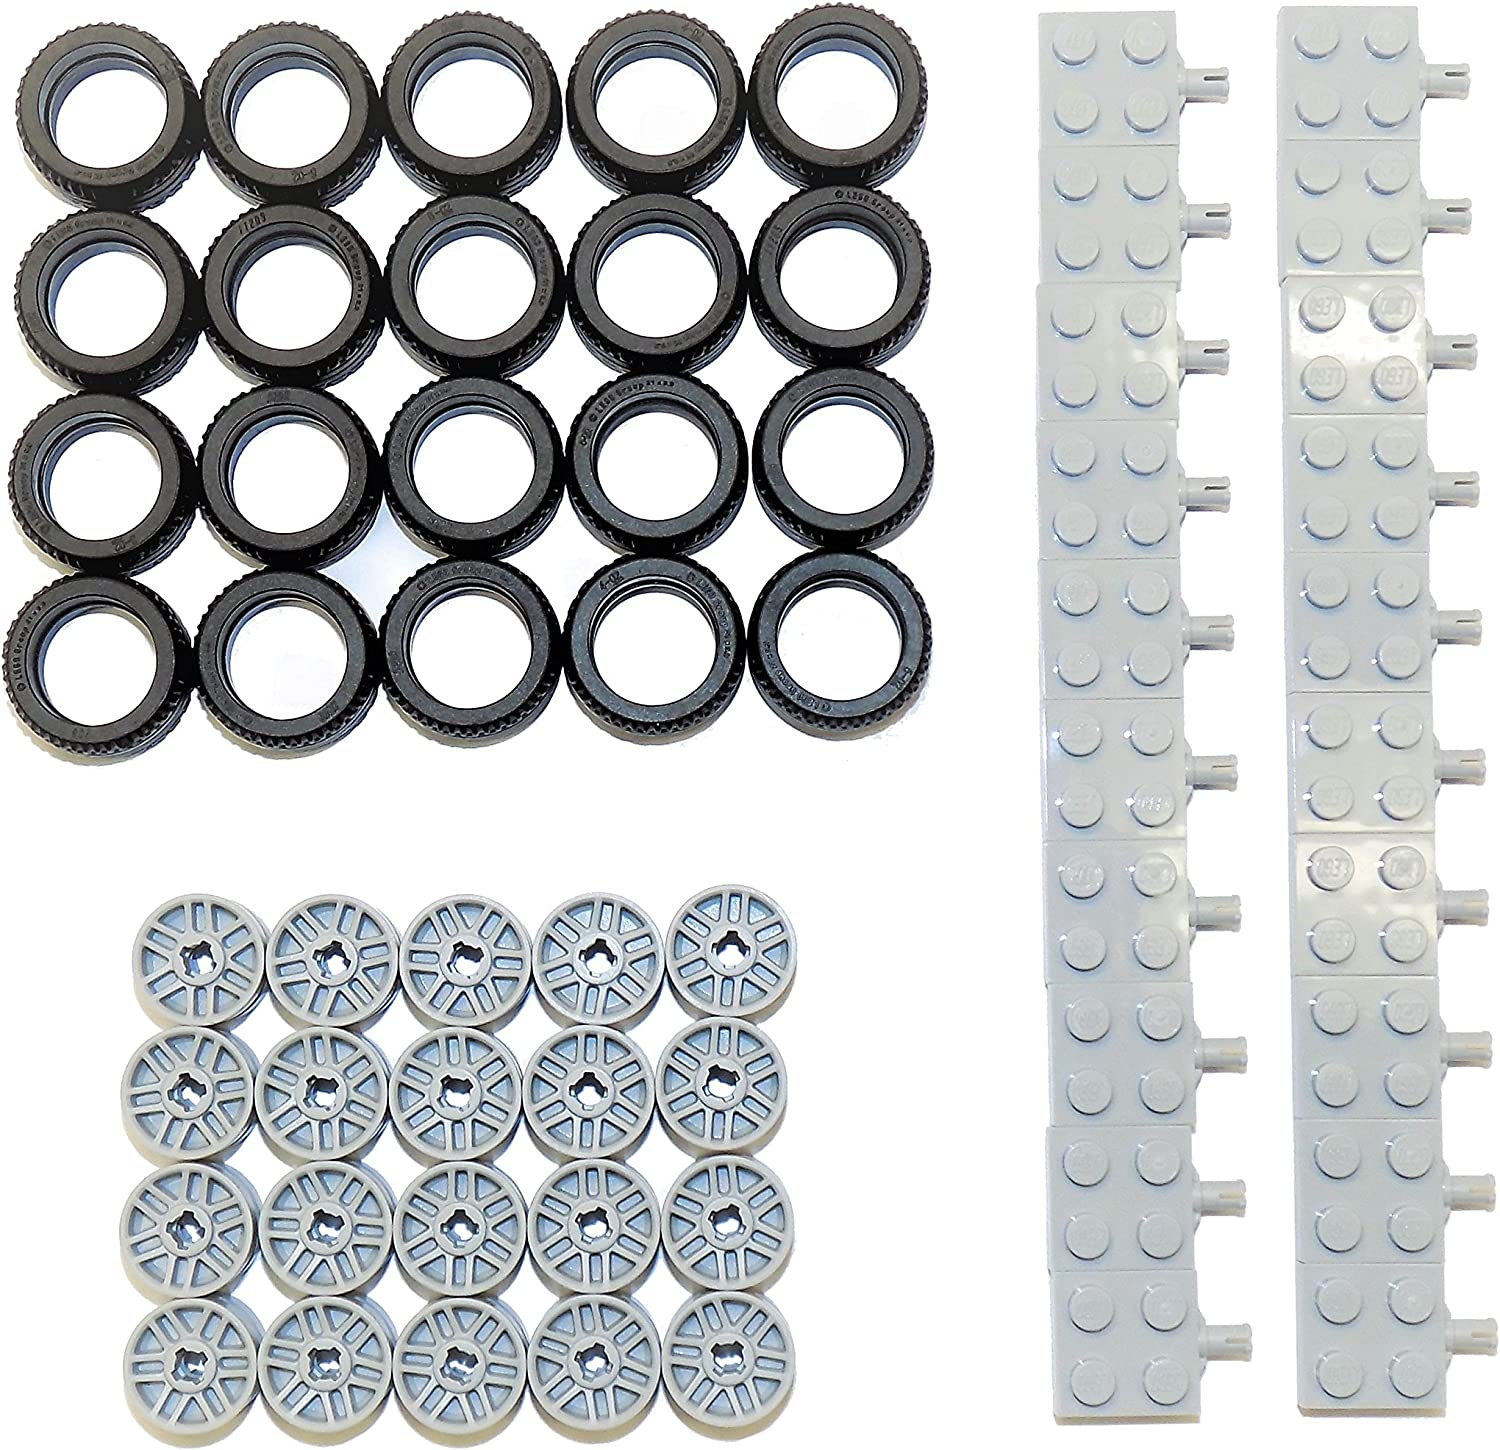 LEGO Parts and Pieces: Black Tire, Light Gray Wheel, and Light Gray Wheel Holder Pack - 60 Pieces